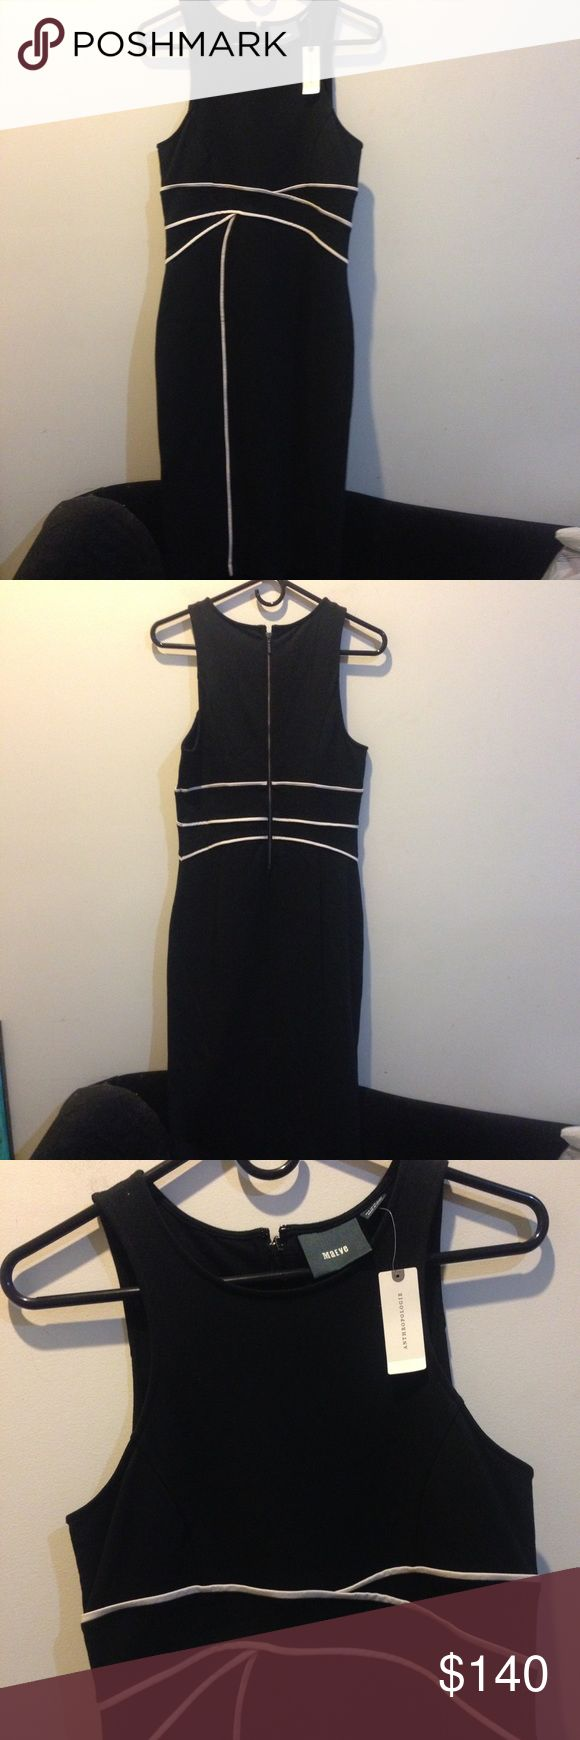 NWT Maeve Anthropologie Black Contour Dress MAEVE Anthropologie black and white Bodycon dress new with tags!! Absolutely stunning dress with tags attached- size 8 and is   Ideal for weddings, the office or any special occasion. It's not lined and has some stretch to it also! Anthropologie Dresses Midi